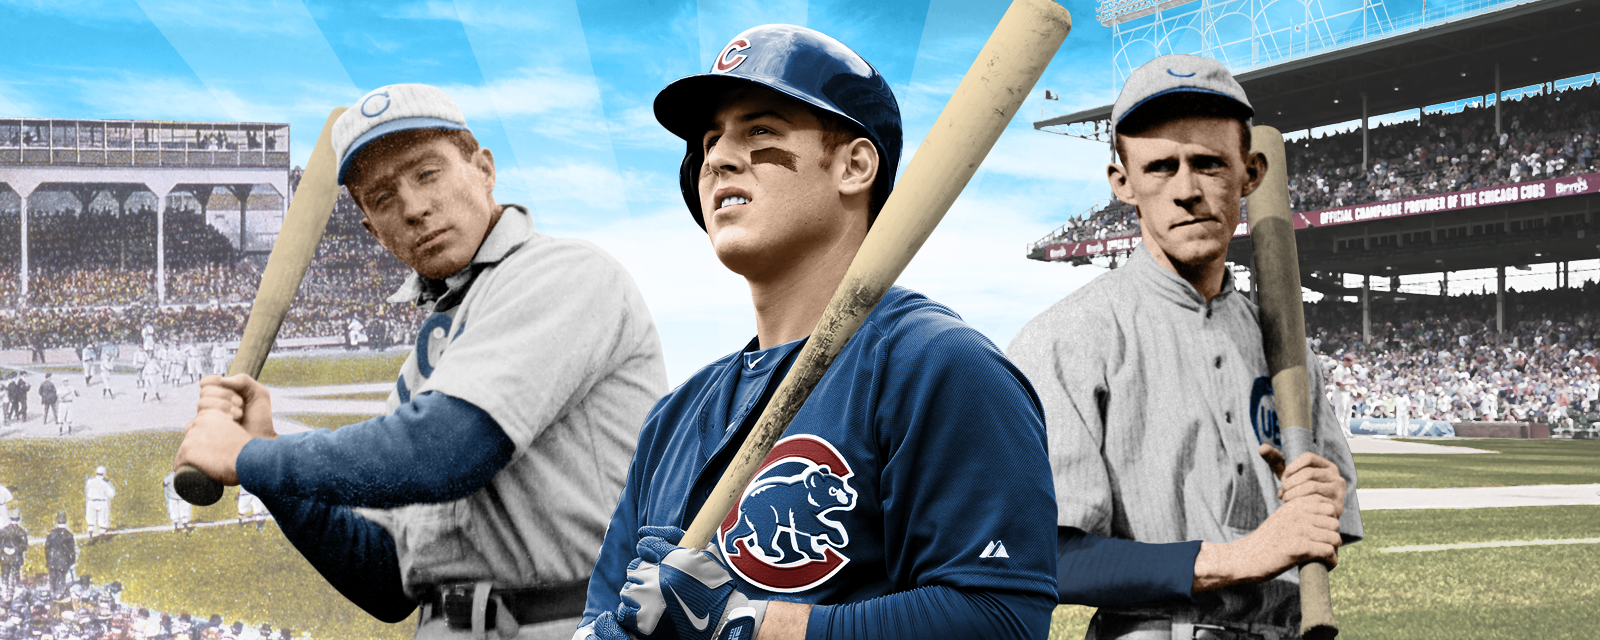 87f4672f The Chicago Cubs: Then and now